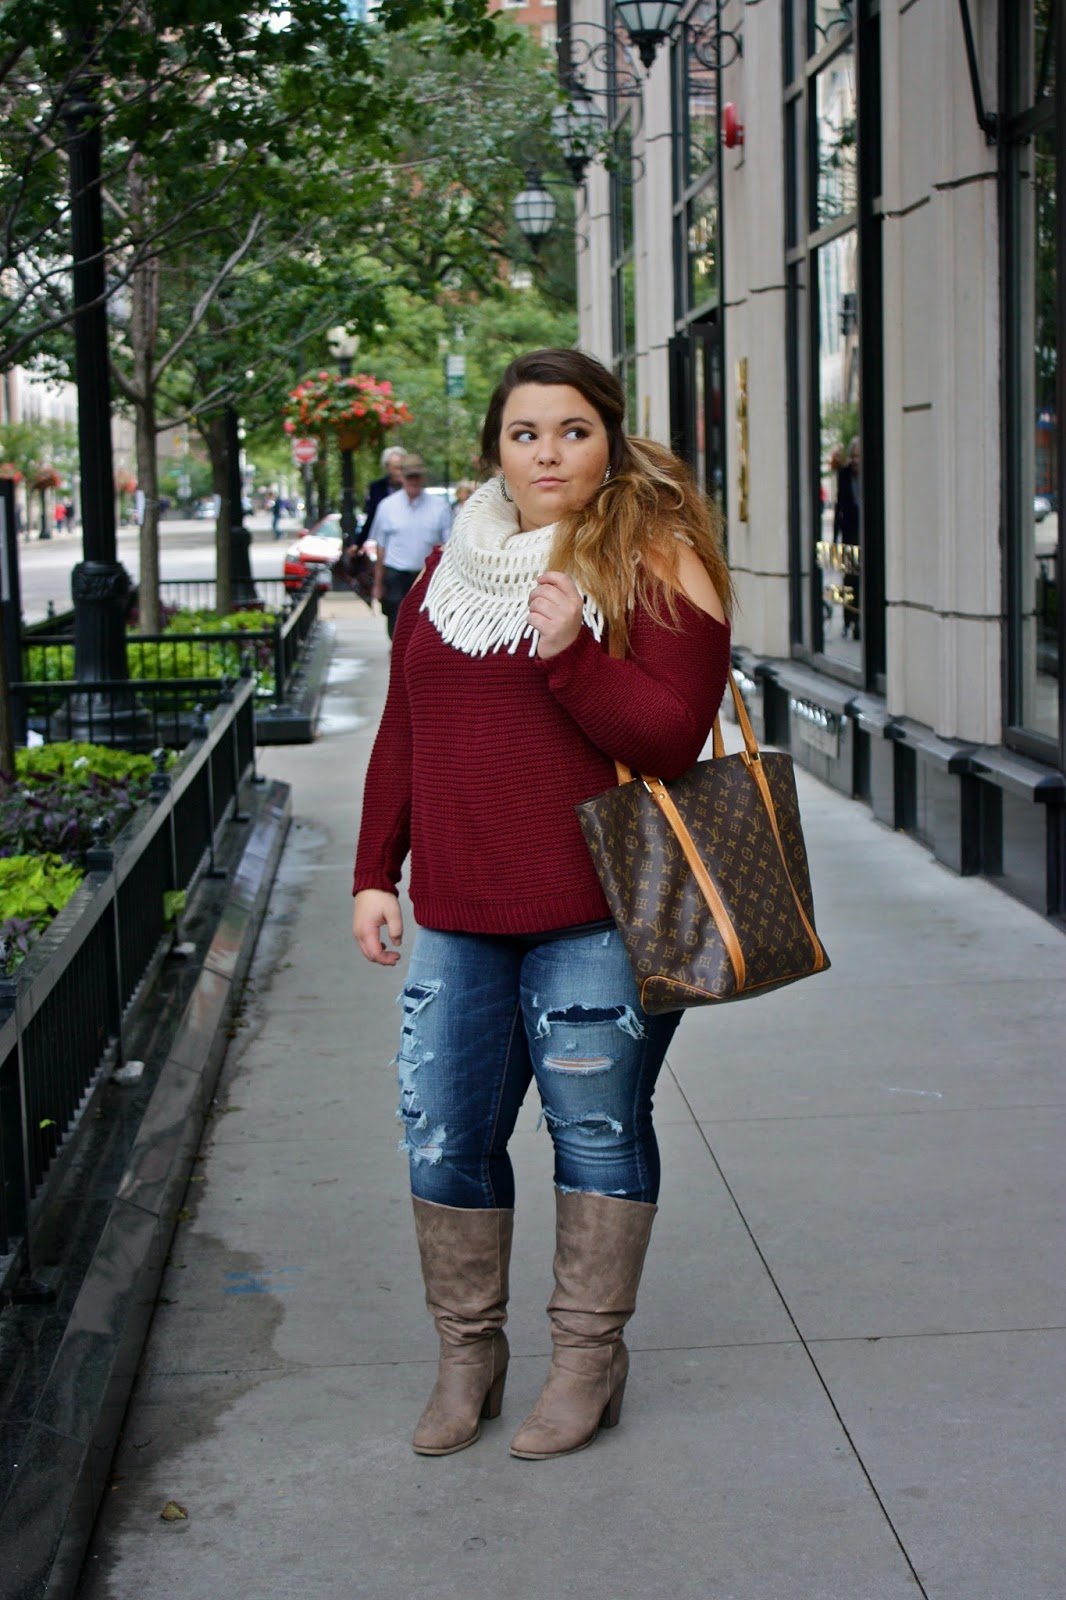 infinity scarf, fall colors, fall style, fall fashion, american eagle denim, forever 21, plus size fashion blogger, natalie craig, chicago, fashion blogger, natalie in the city, destroyed denim, boots, curvy fahionista, akira chicago, plus size boots, louis vuitton, side pony tail, thick hair styles, sweater cut-outs,